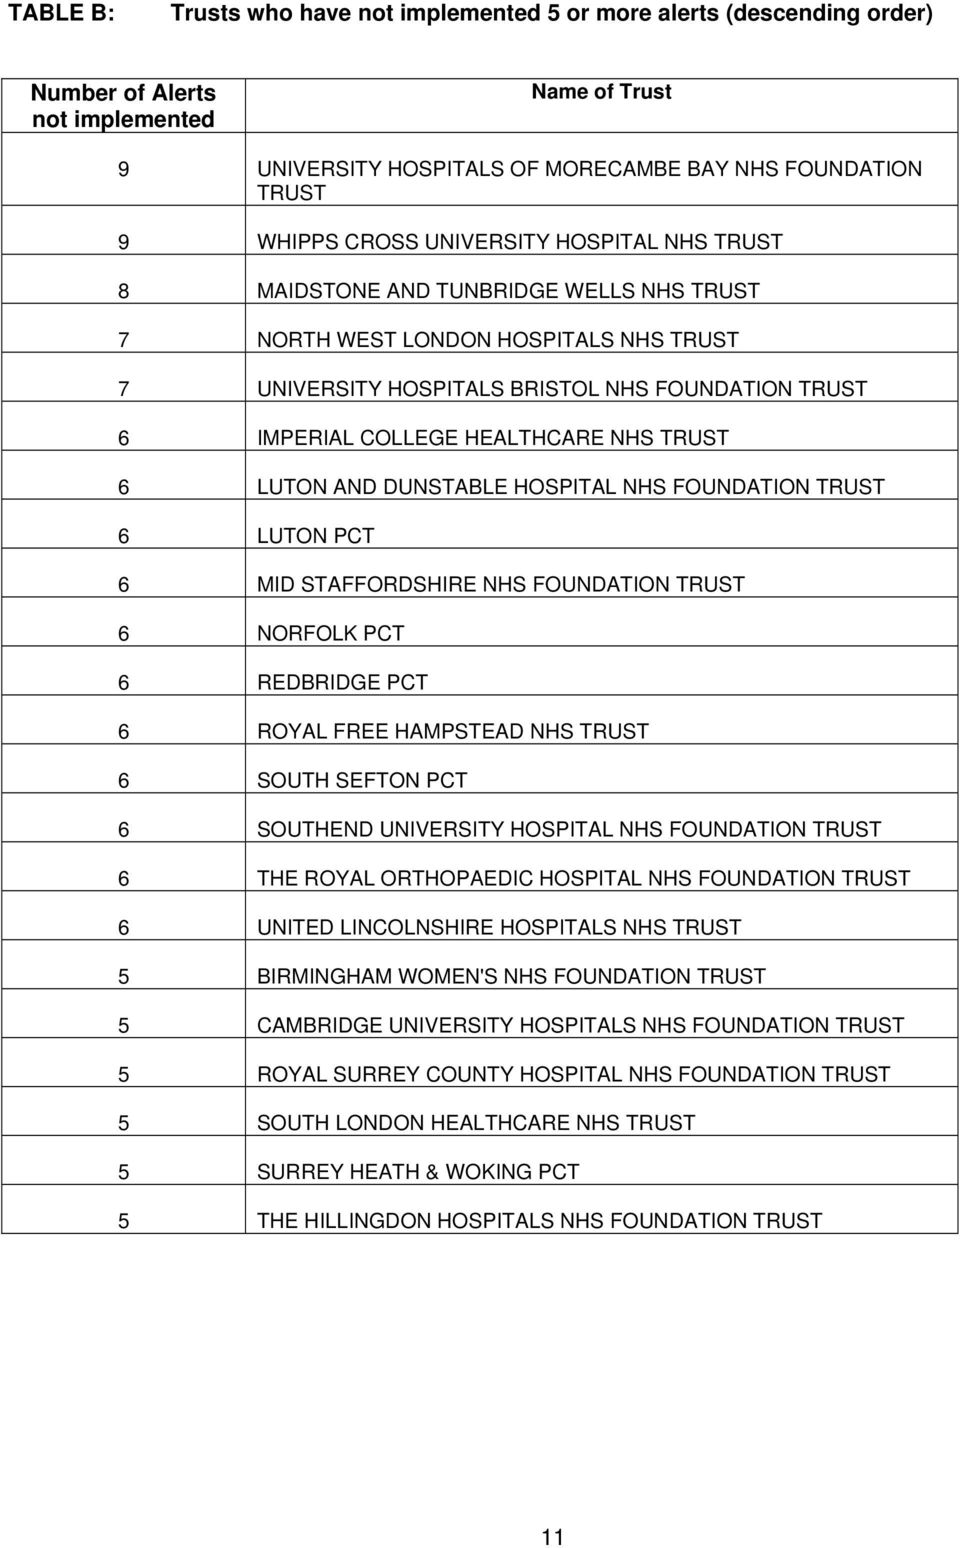 TRUST 6 LUTON AND DUNSTABLE HOSPITAL NHS FOUNDATION TRUST 6 LUTON PCT 6 MID STAFFORDSHIRE NHS FOUNDATION TRUST 6 NORFOLK PCT 6 REDBRIDGE PCT 6 ROYAL FREE HAMPSTEAD NHS TRUST 6 SOUTH SEFTON PCT 6